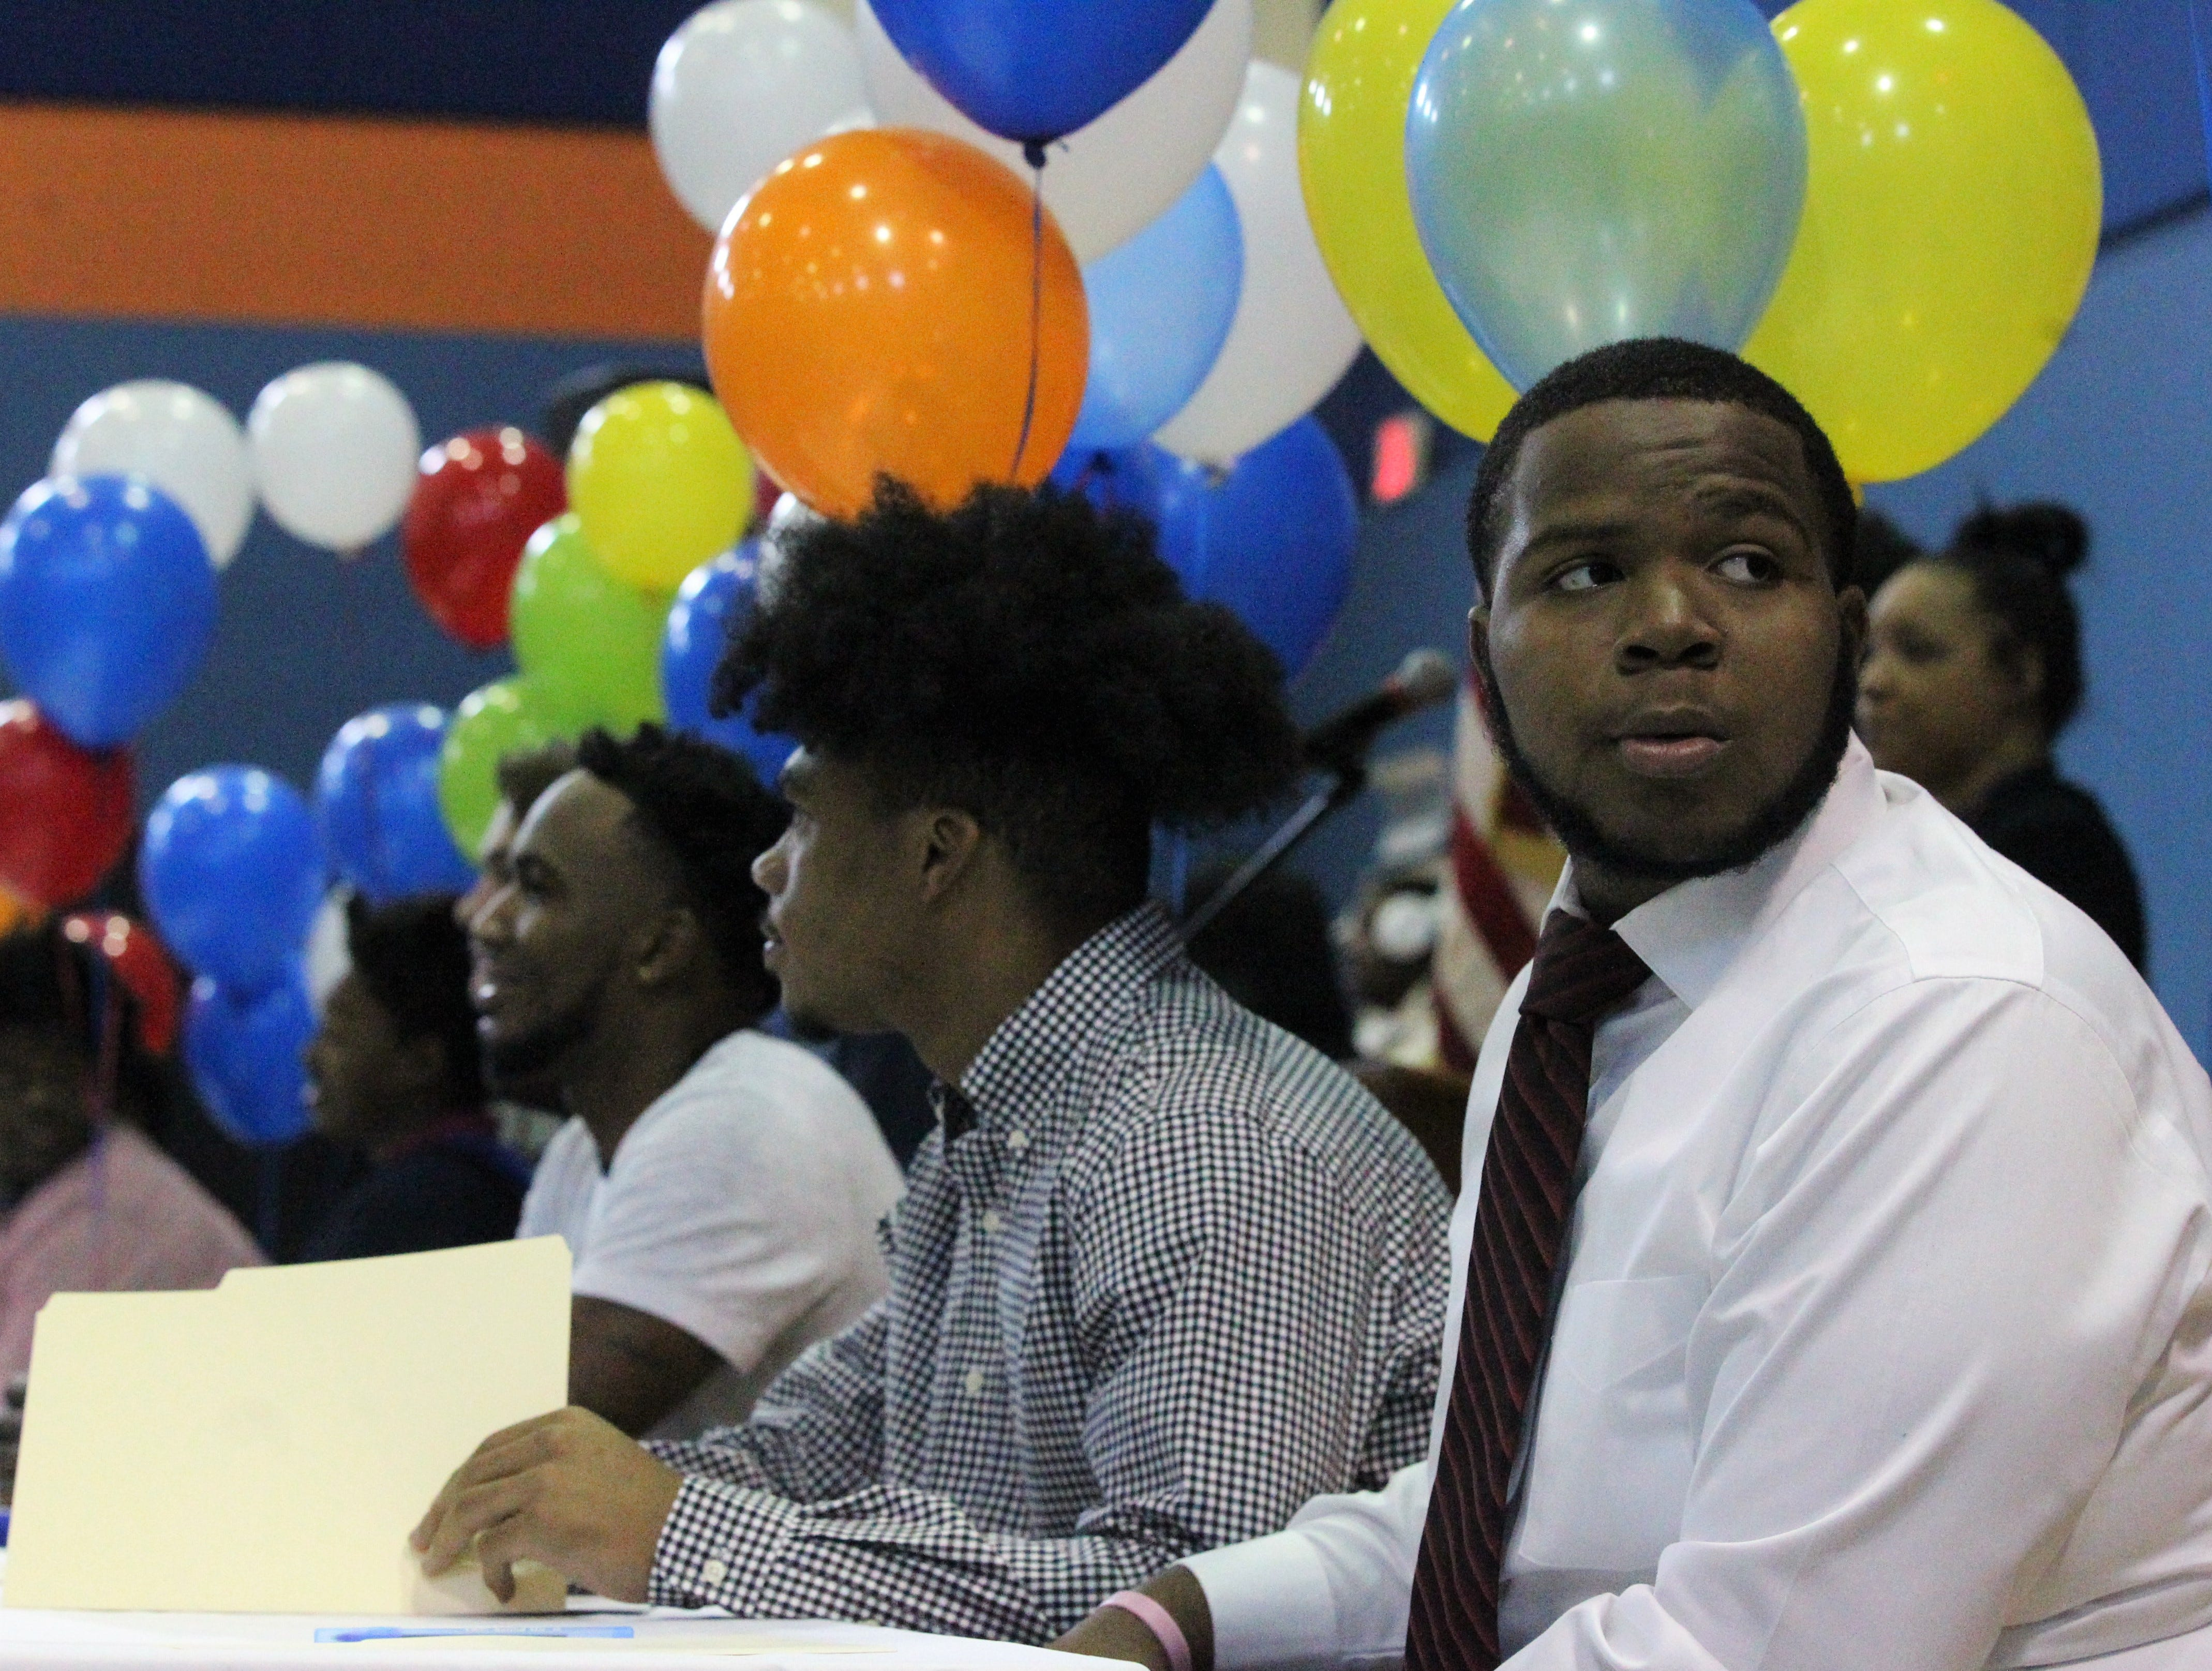 Jefferson County lineman Amantez Ford looks around before Jefferson County's signing day ceremony on Feb. 13, 2019.